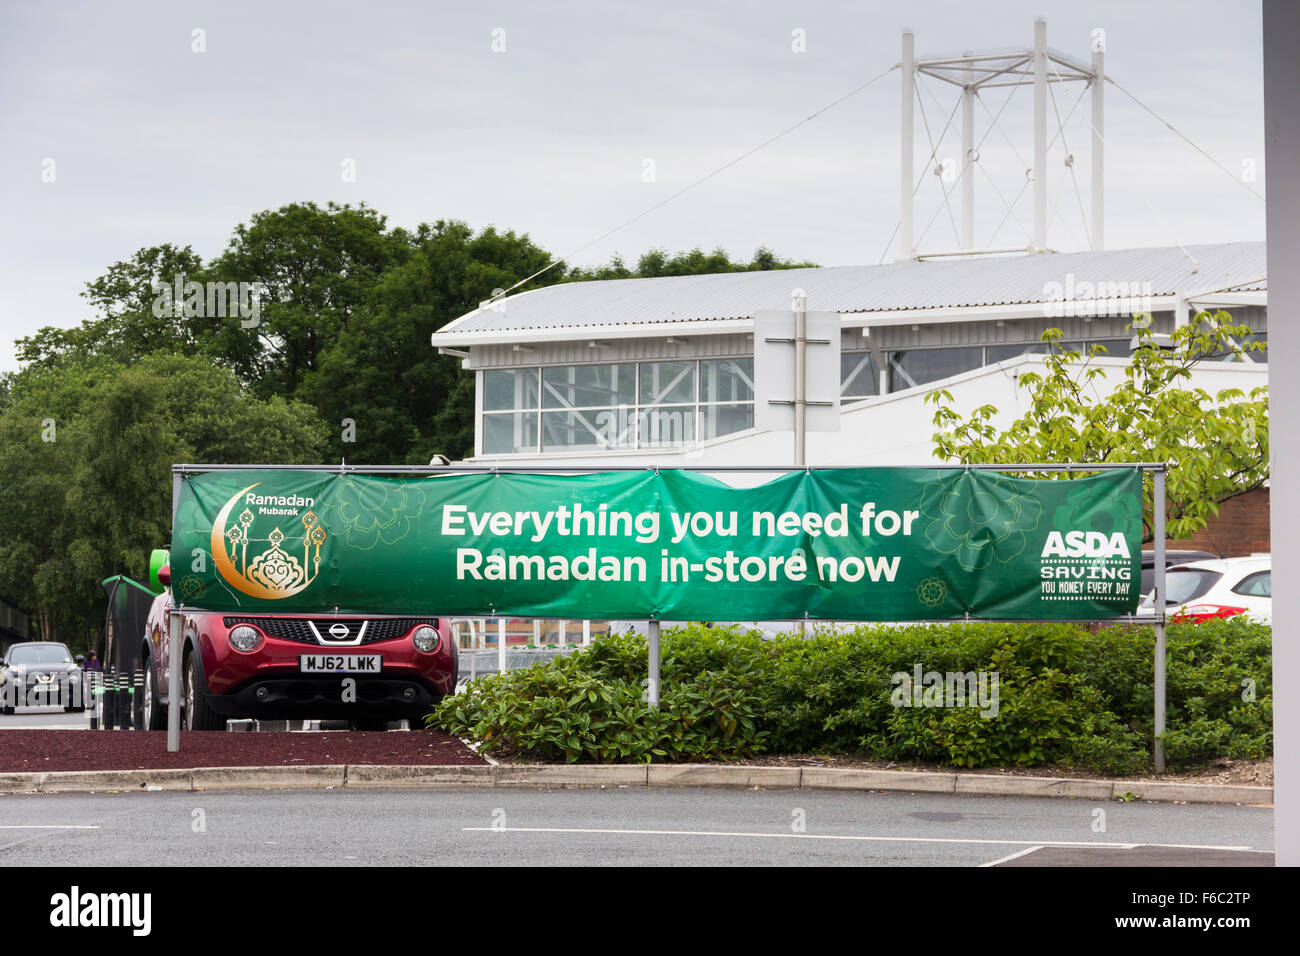 Ramadan advertising banner outside the ASDA store, Astley Bridge, Bolton. Ramadan. - Stock Image